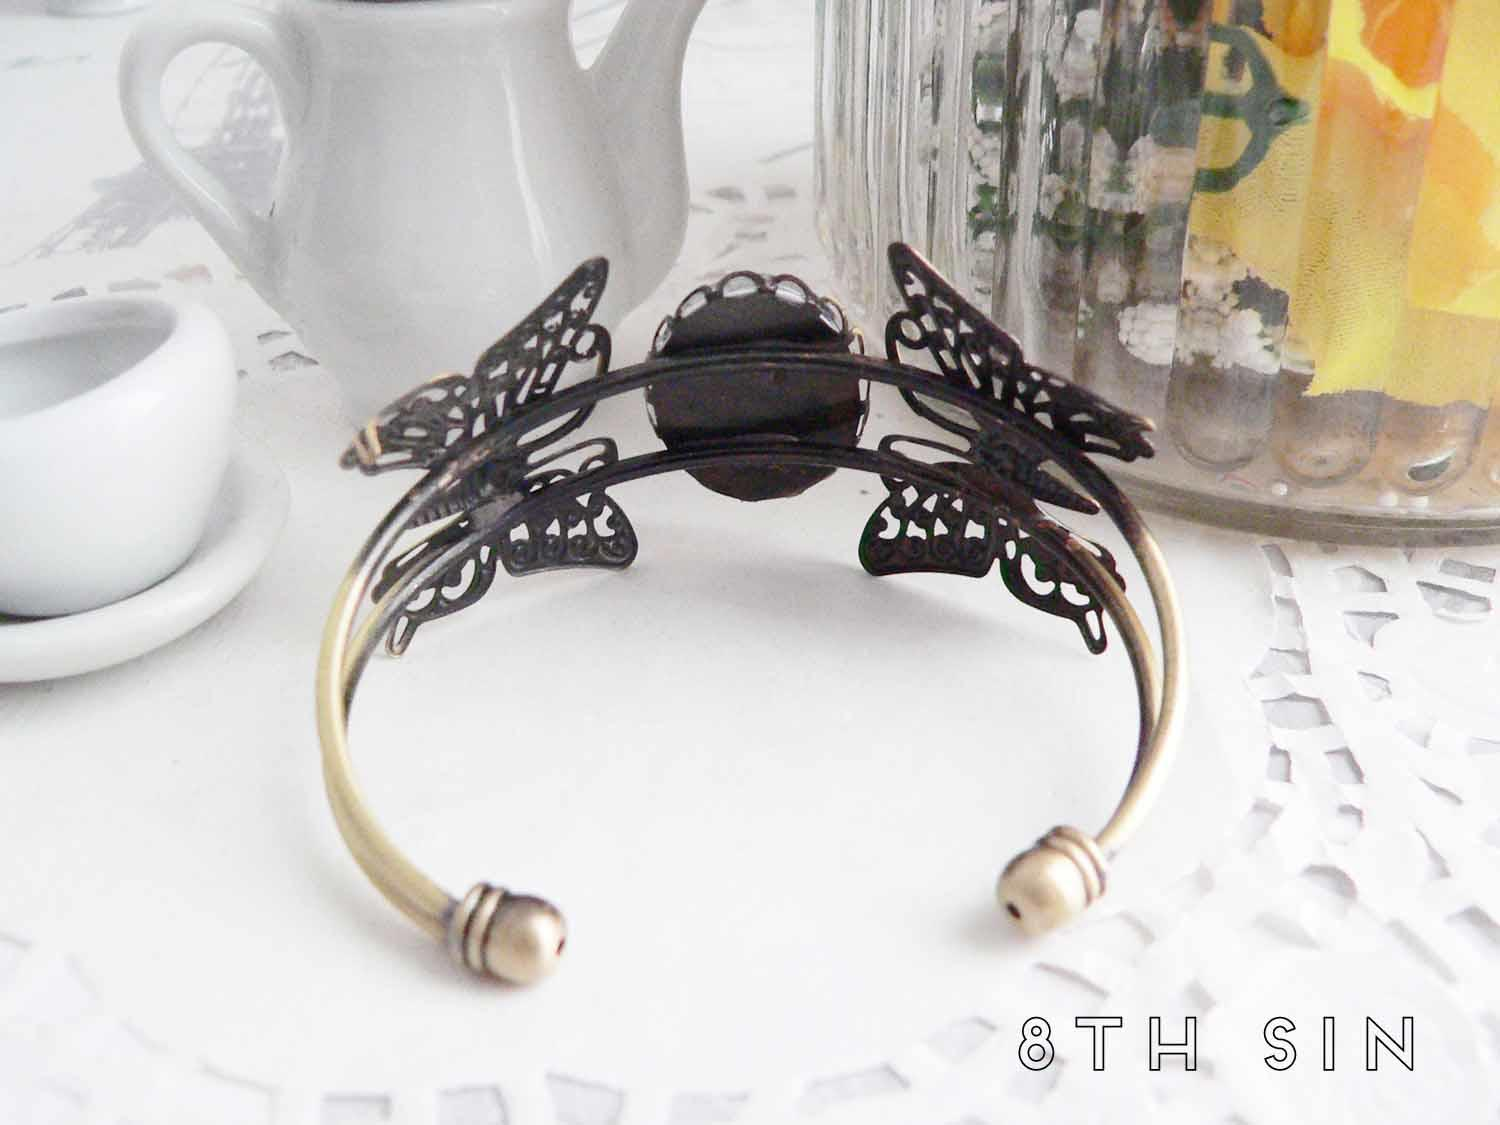 antique bronze raven bracelet